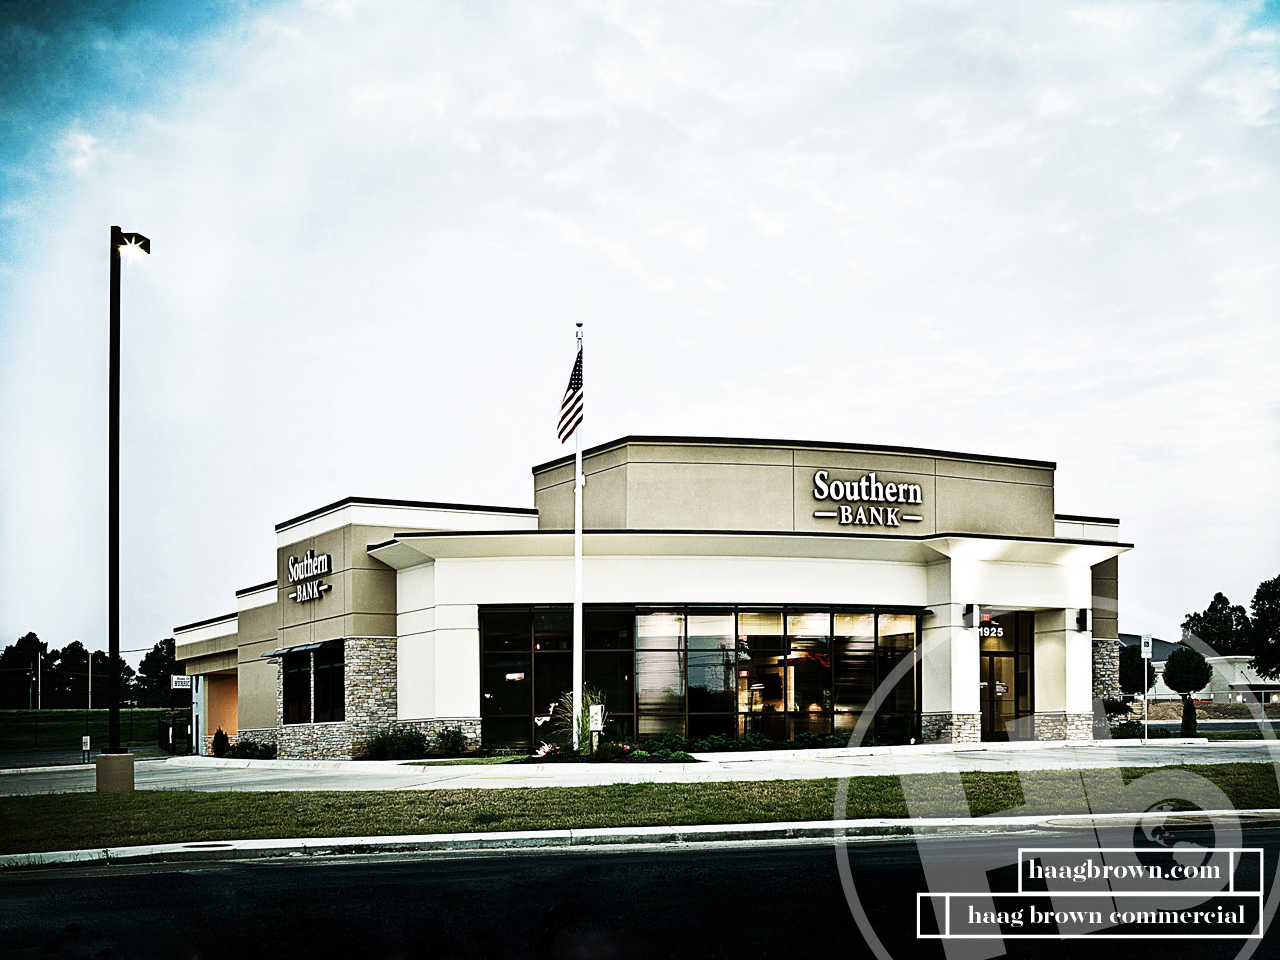 Southern Bank in Jonesboro, AR